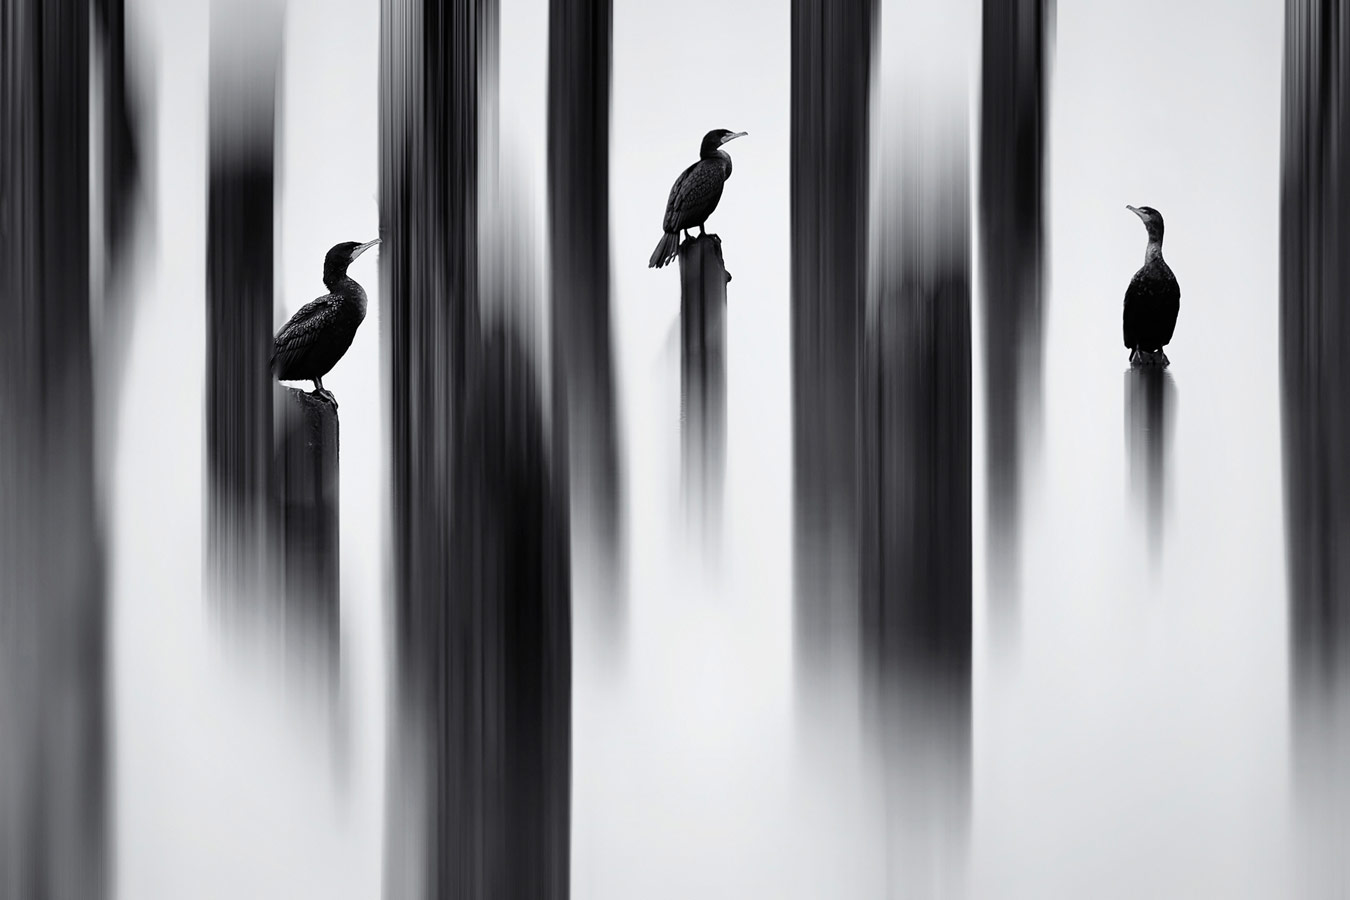 Painted Cormorans, © Shane Kalyn (CAN), Runner-up, Nature Photographer of the Year